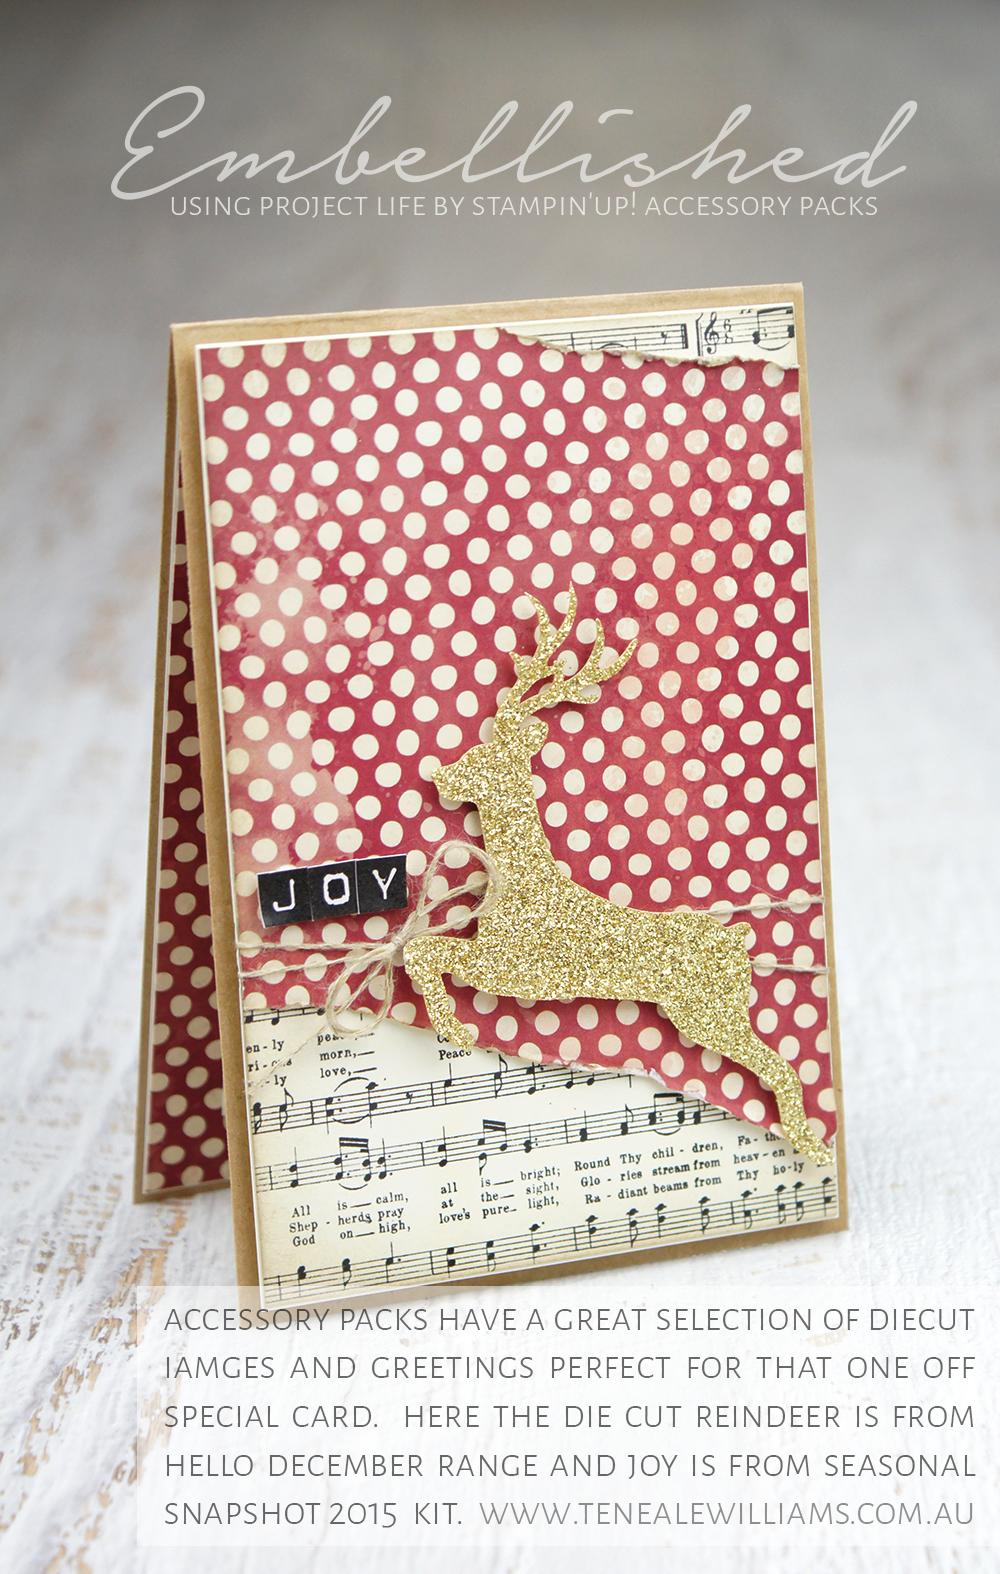 By Teneale Williams | Project Life By Stampin' Up! PLxSU | accessory packs have a great selection of diecut iamges and greetings perfect for that one off special card. here the die cut reindeer is from hello december range and joy is from seasonal snapshot 2015 kit.